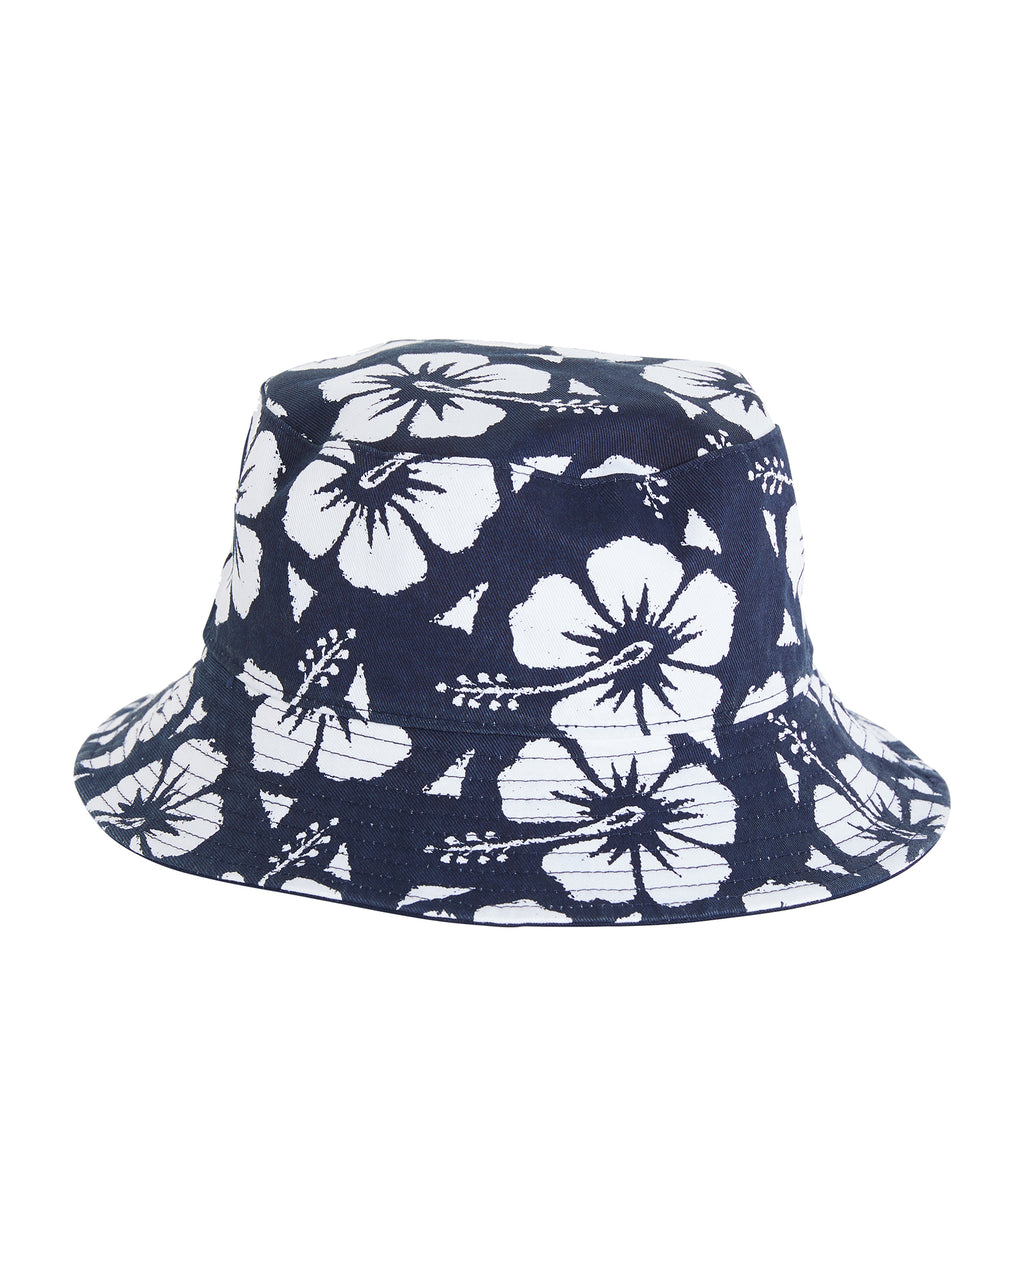 Kids Classic Bucket Hat - Reversible - Navy